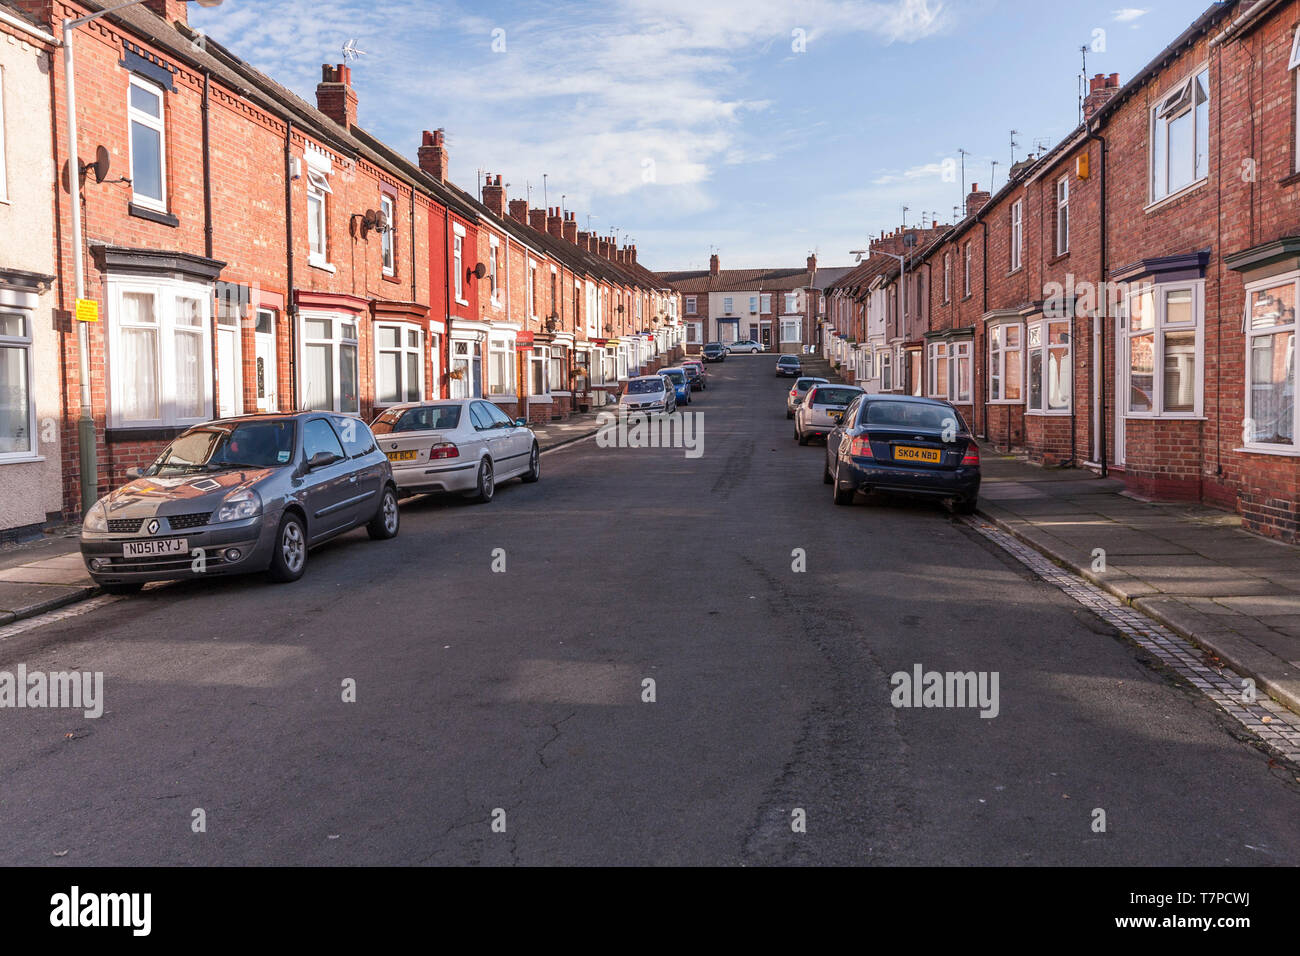 Terraced houses in Roslyn Street,Darlington,England,UK - Stock Image